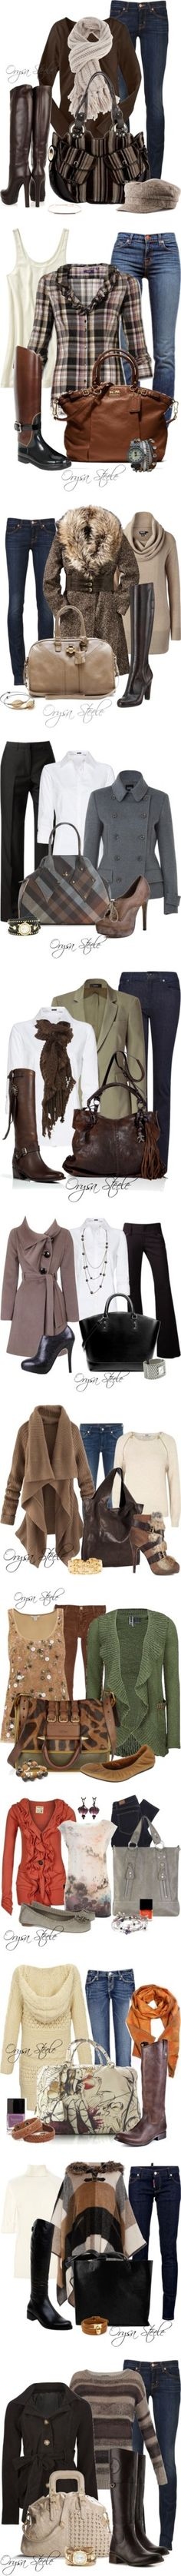 """Fall"" by orysa.polyvore #Fashion #Womens #Fall"